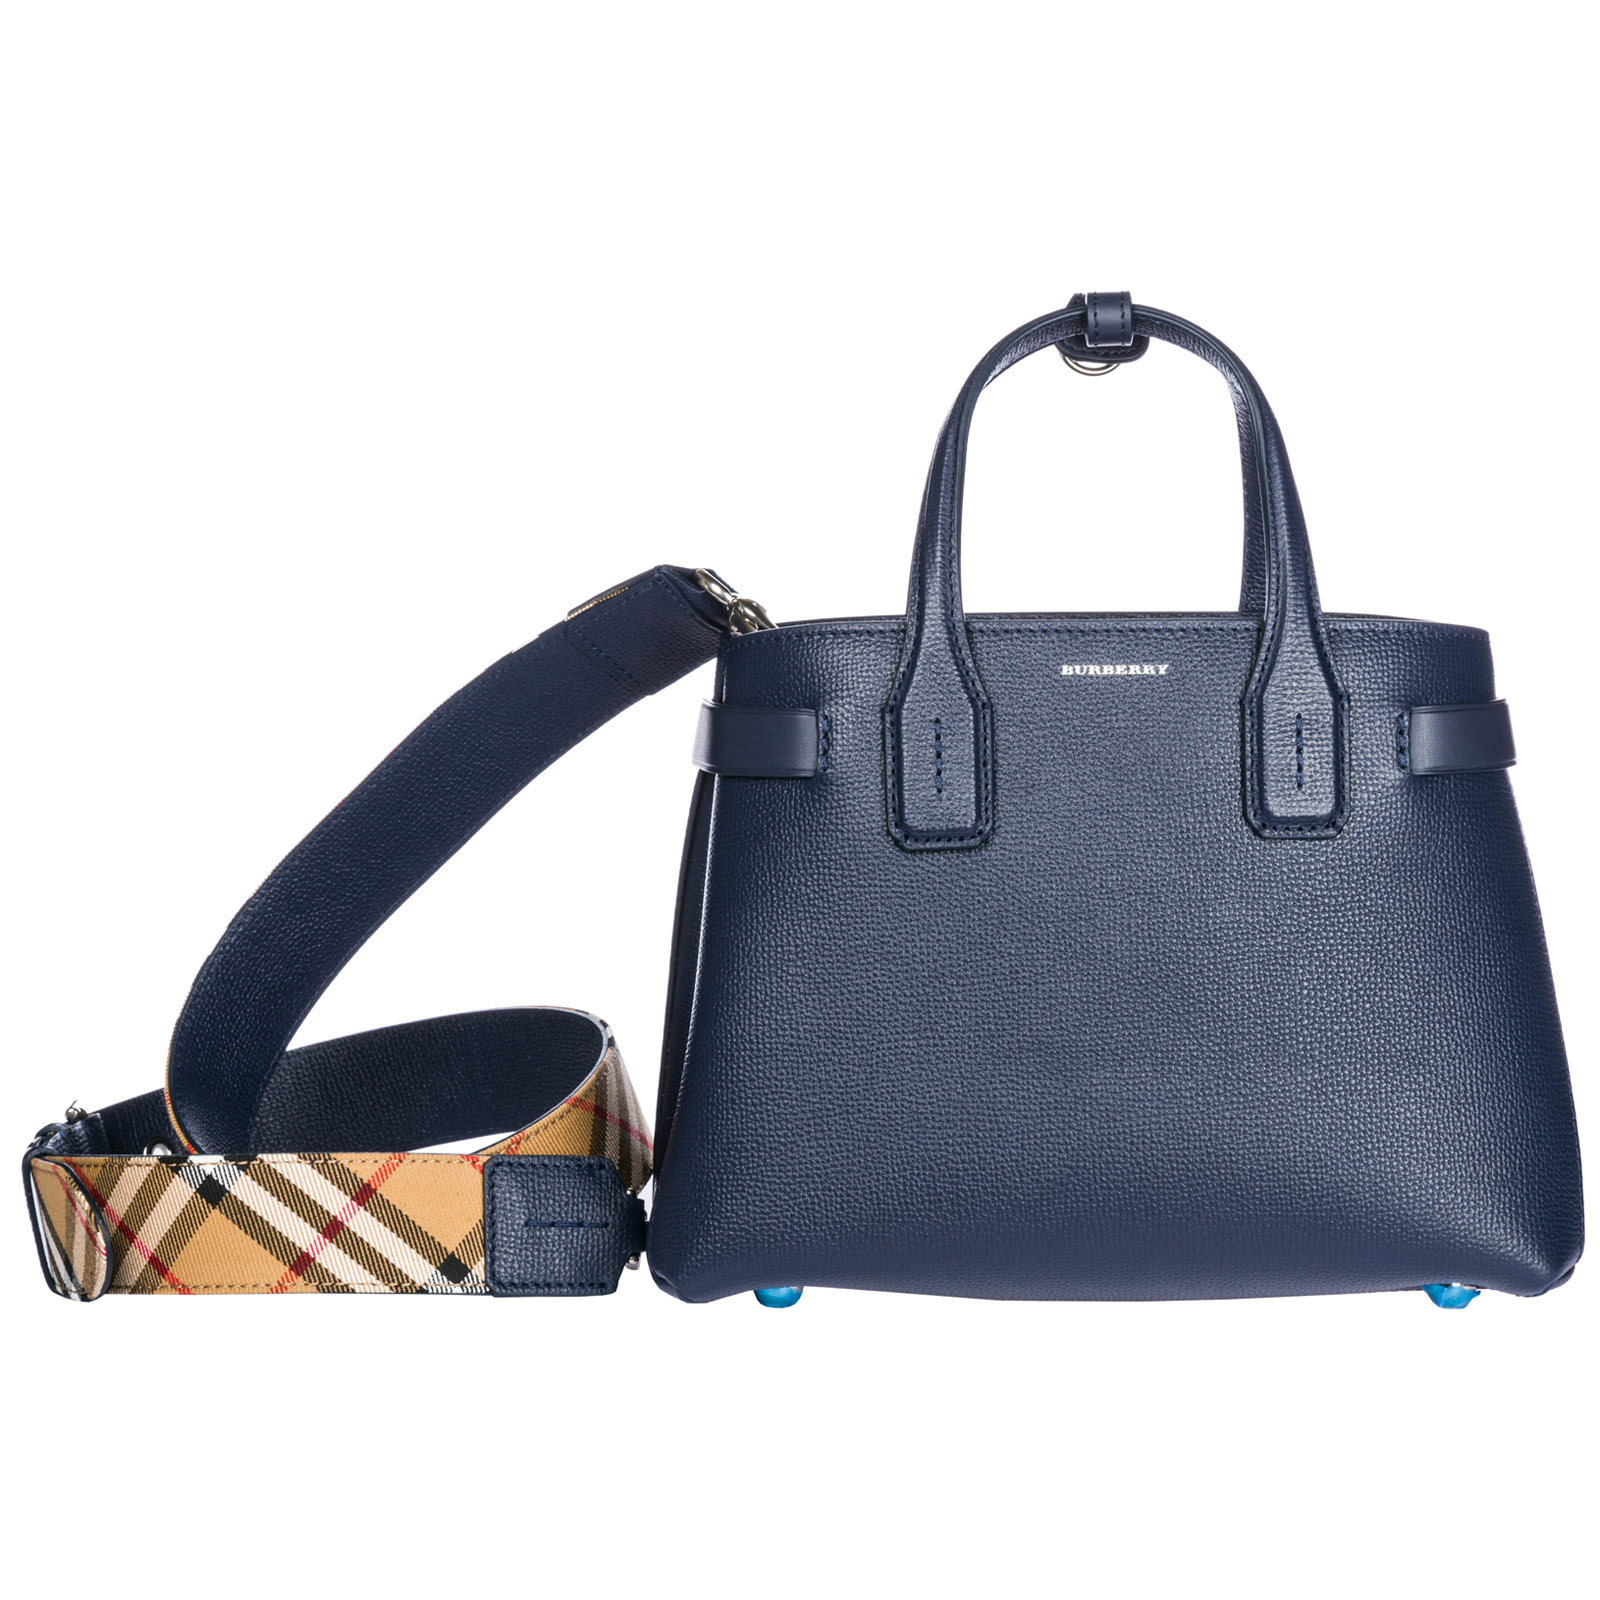 453486c929ee Women'S Leather Handbag Shopping Bag Purse The Banner in Blue